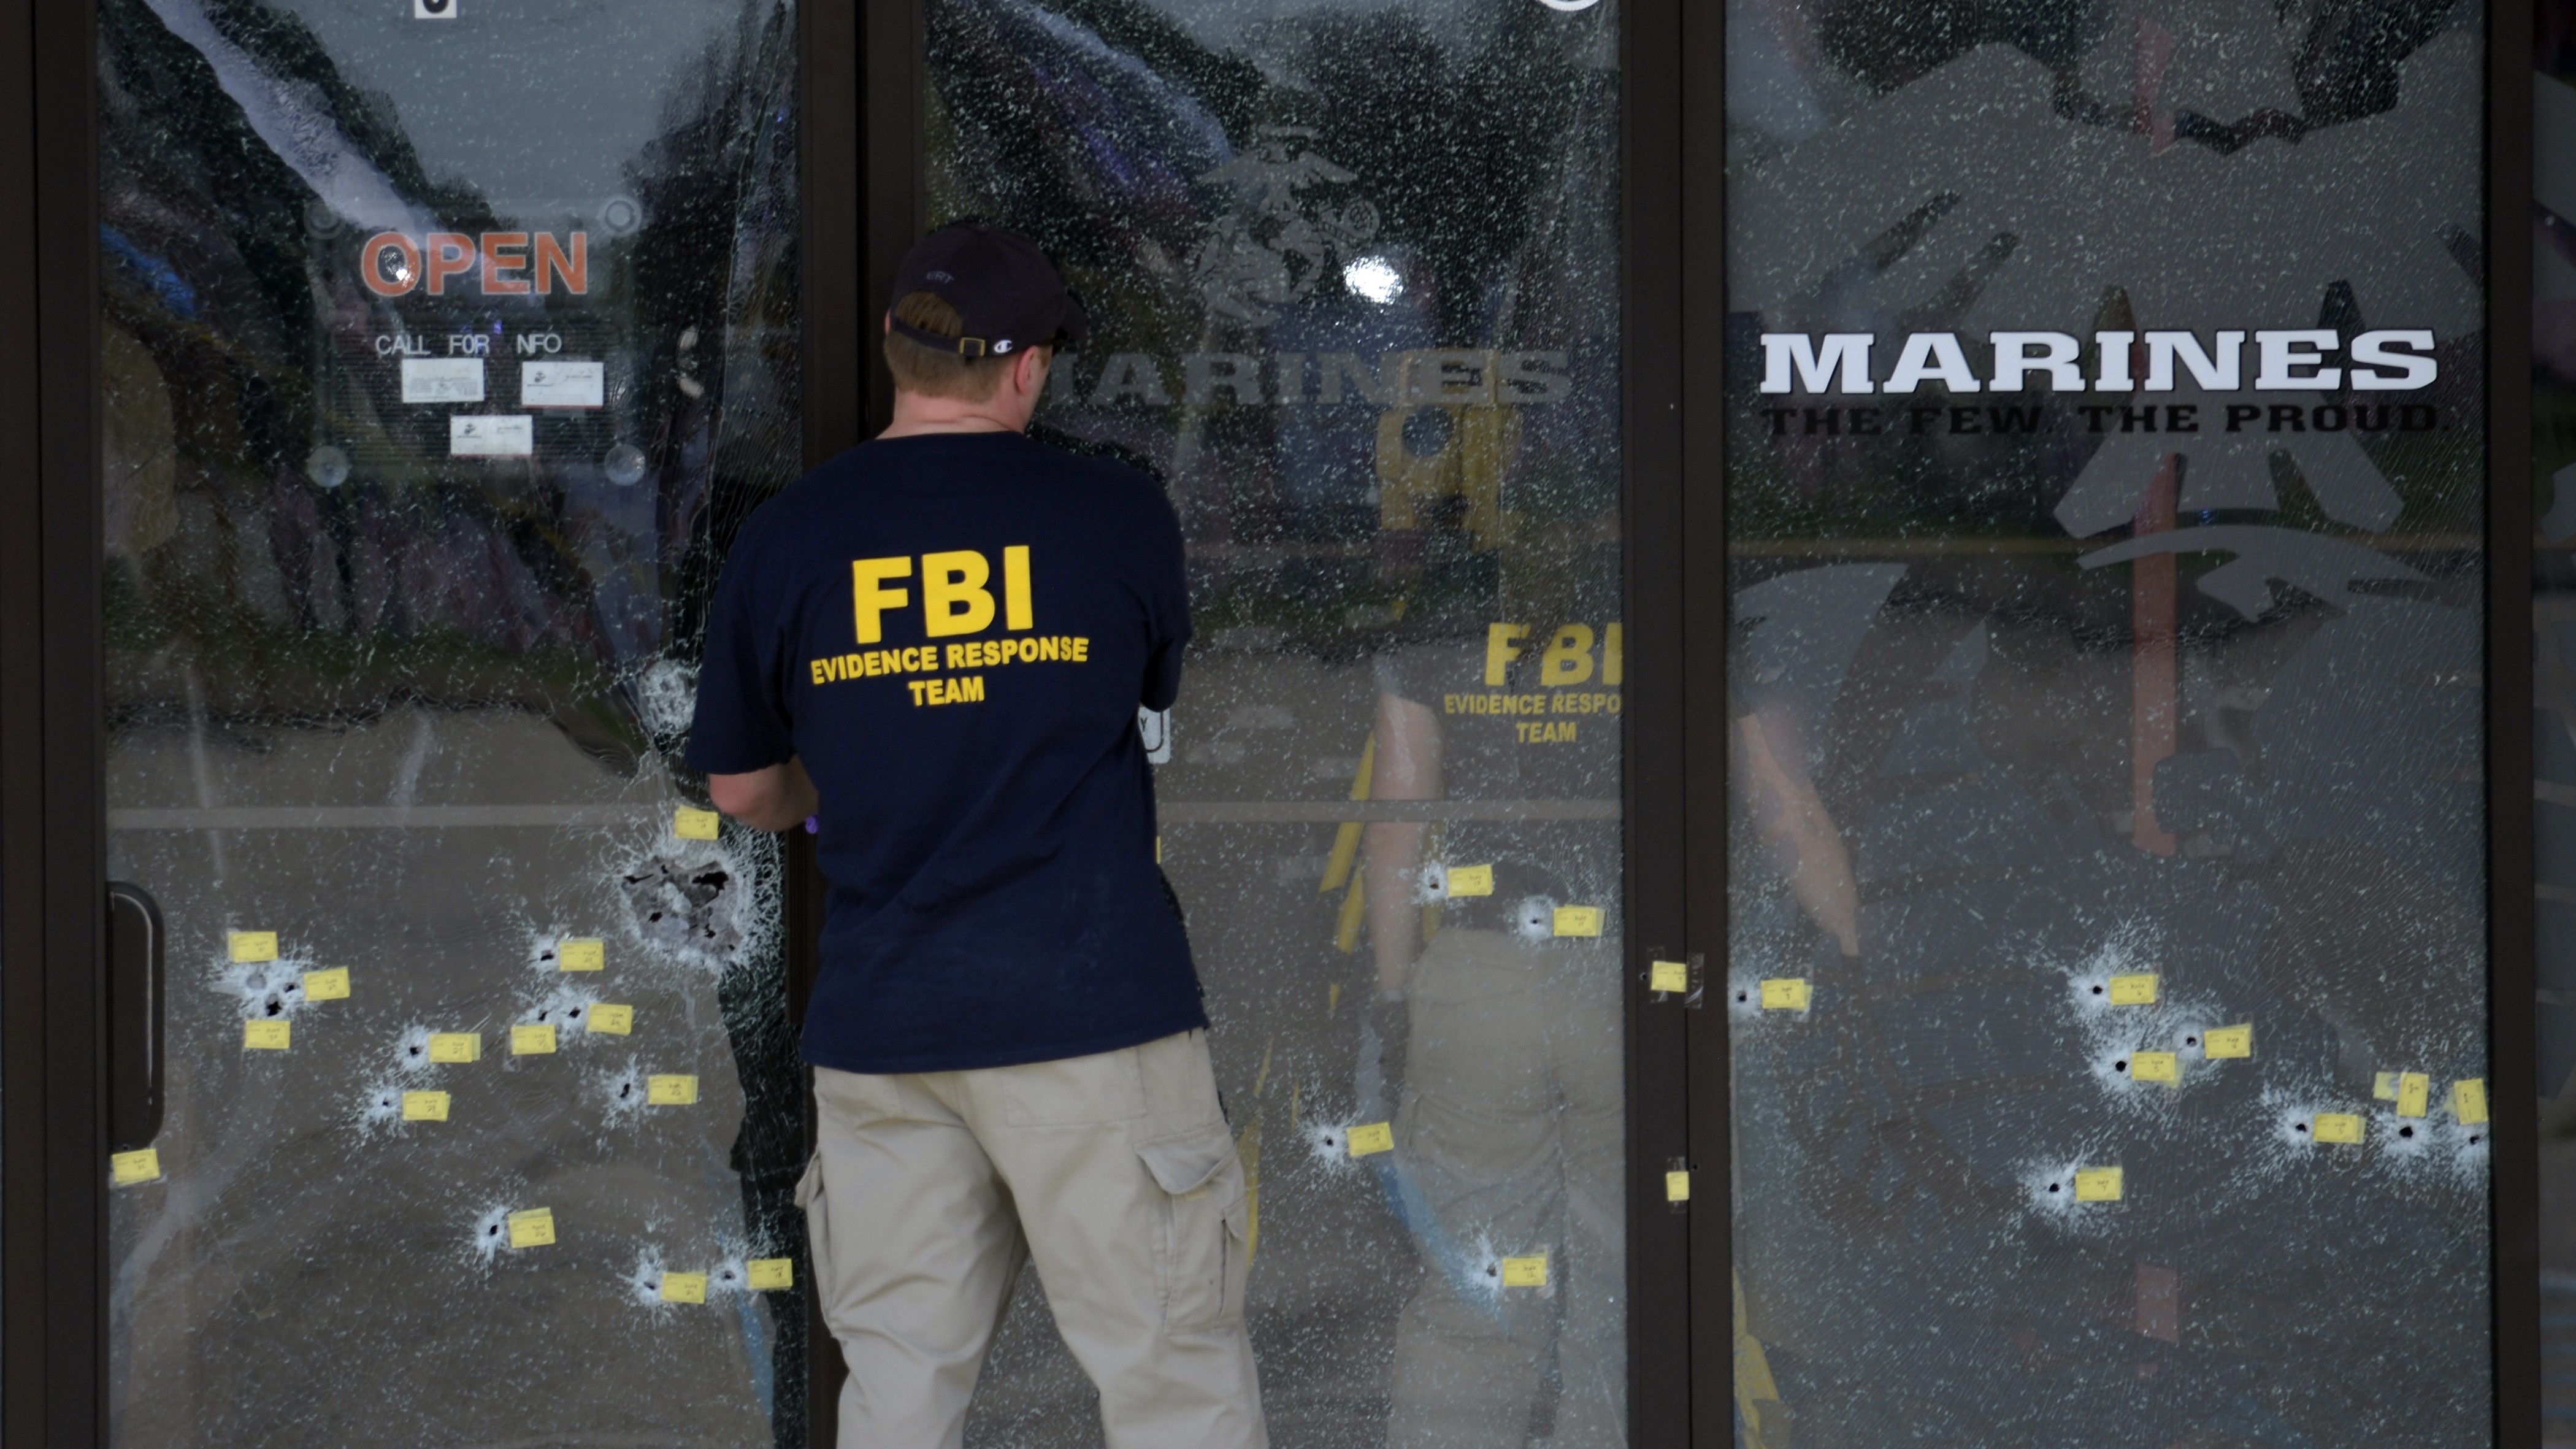 Alleged Chattanooga Shooter's Friend Reveals 'War' Text Message Sent Just Before Attack